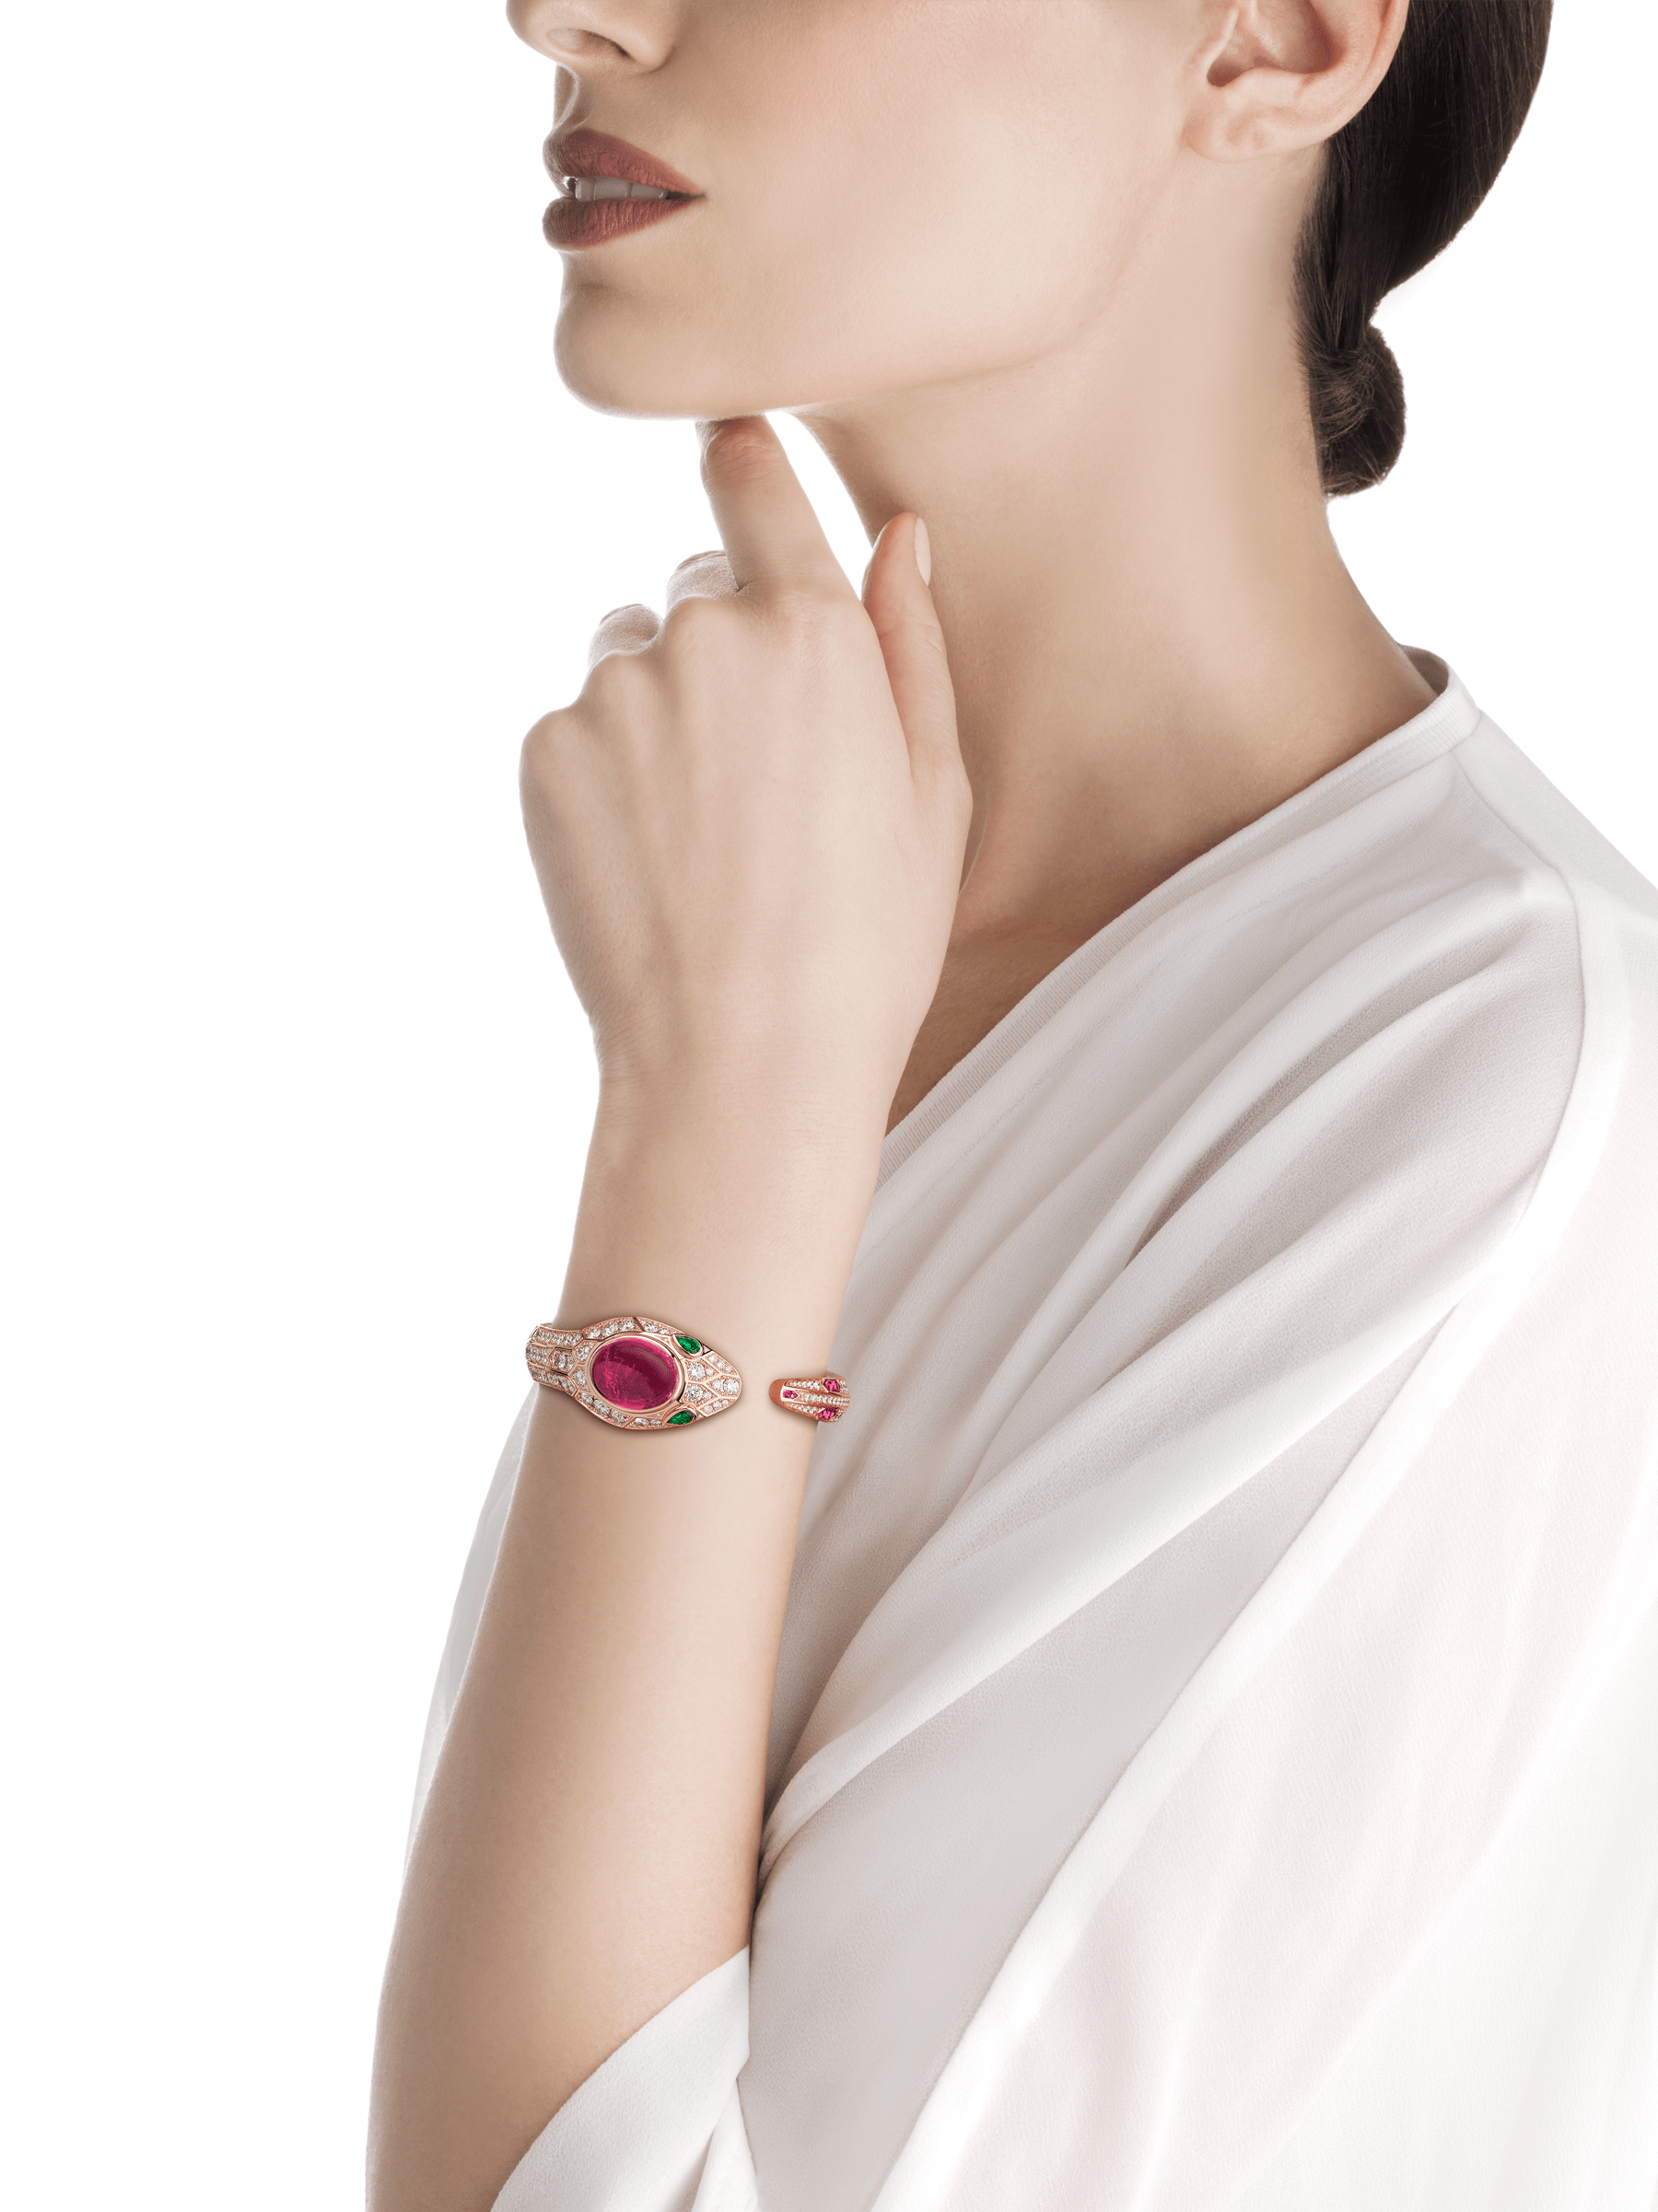 Serpenti Seduttori watch with 18 kt rose gold case and dial, 18 kt rose gold head set with brilliant cut diamonds, one cabochon cut tourmaline and emerald eyes, 18 kt rose gold bracelet set with brilliant cut diamonds and tourmalines. 102616 image 4